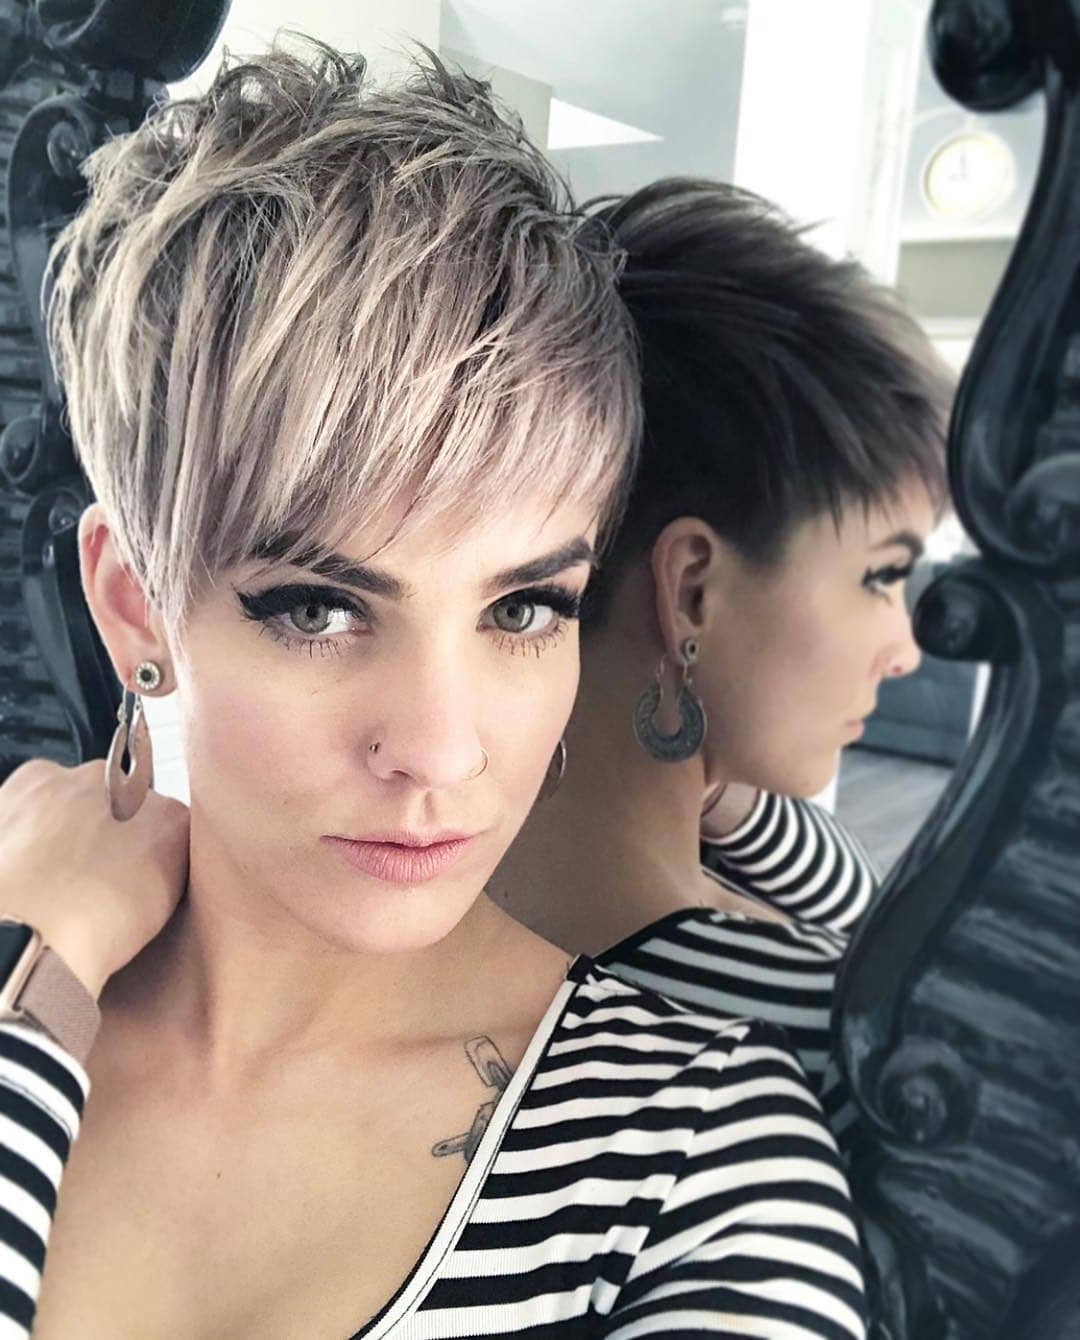 Top 10 Most Flattering Pixie Haircuts For Women, Short Hair Within Long Pixie Haircuts With Angled Layers (View 12 of 20)